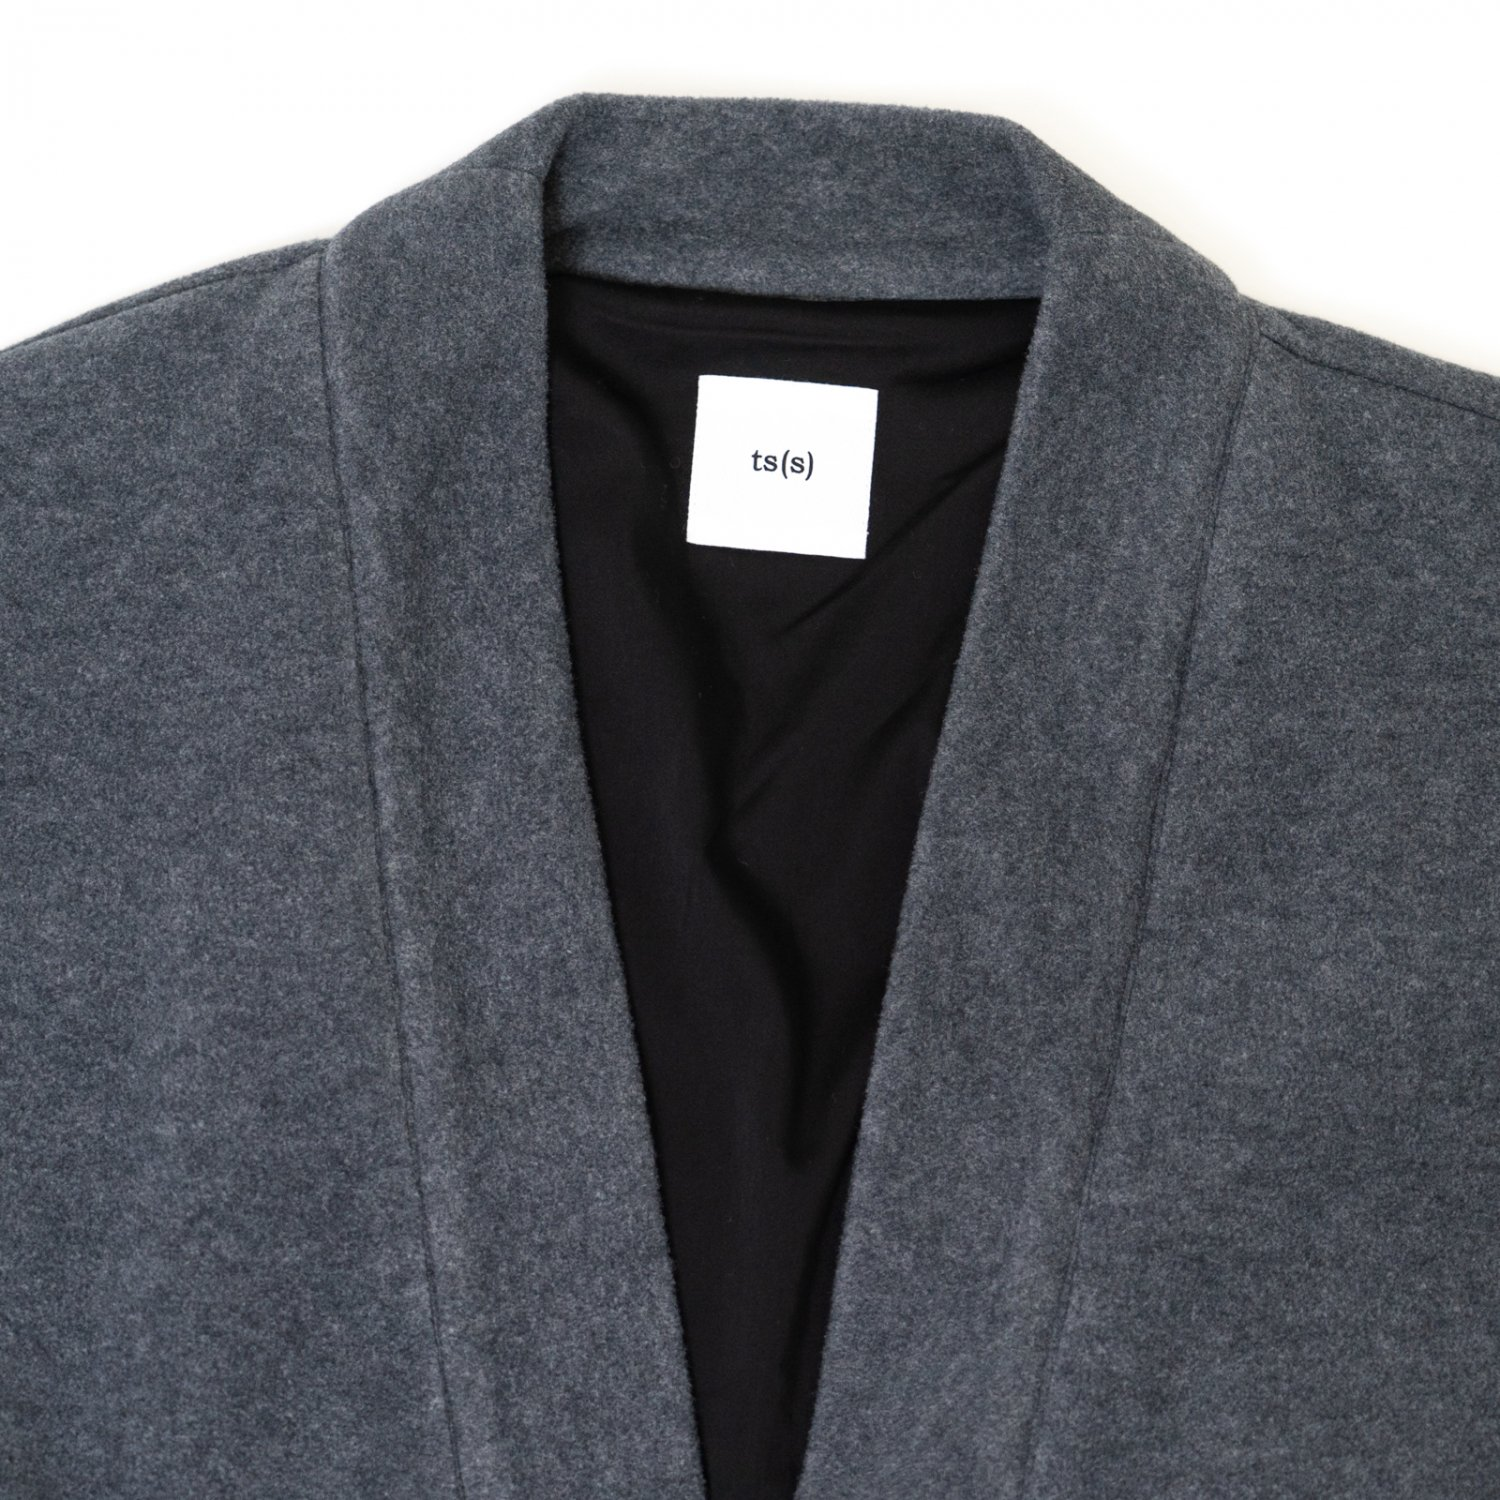 ts(s) * Italian Polyester Viscose Fleece Jersey Lined Easy Cardigan * Charcoal